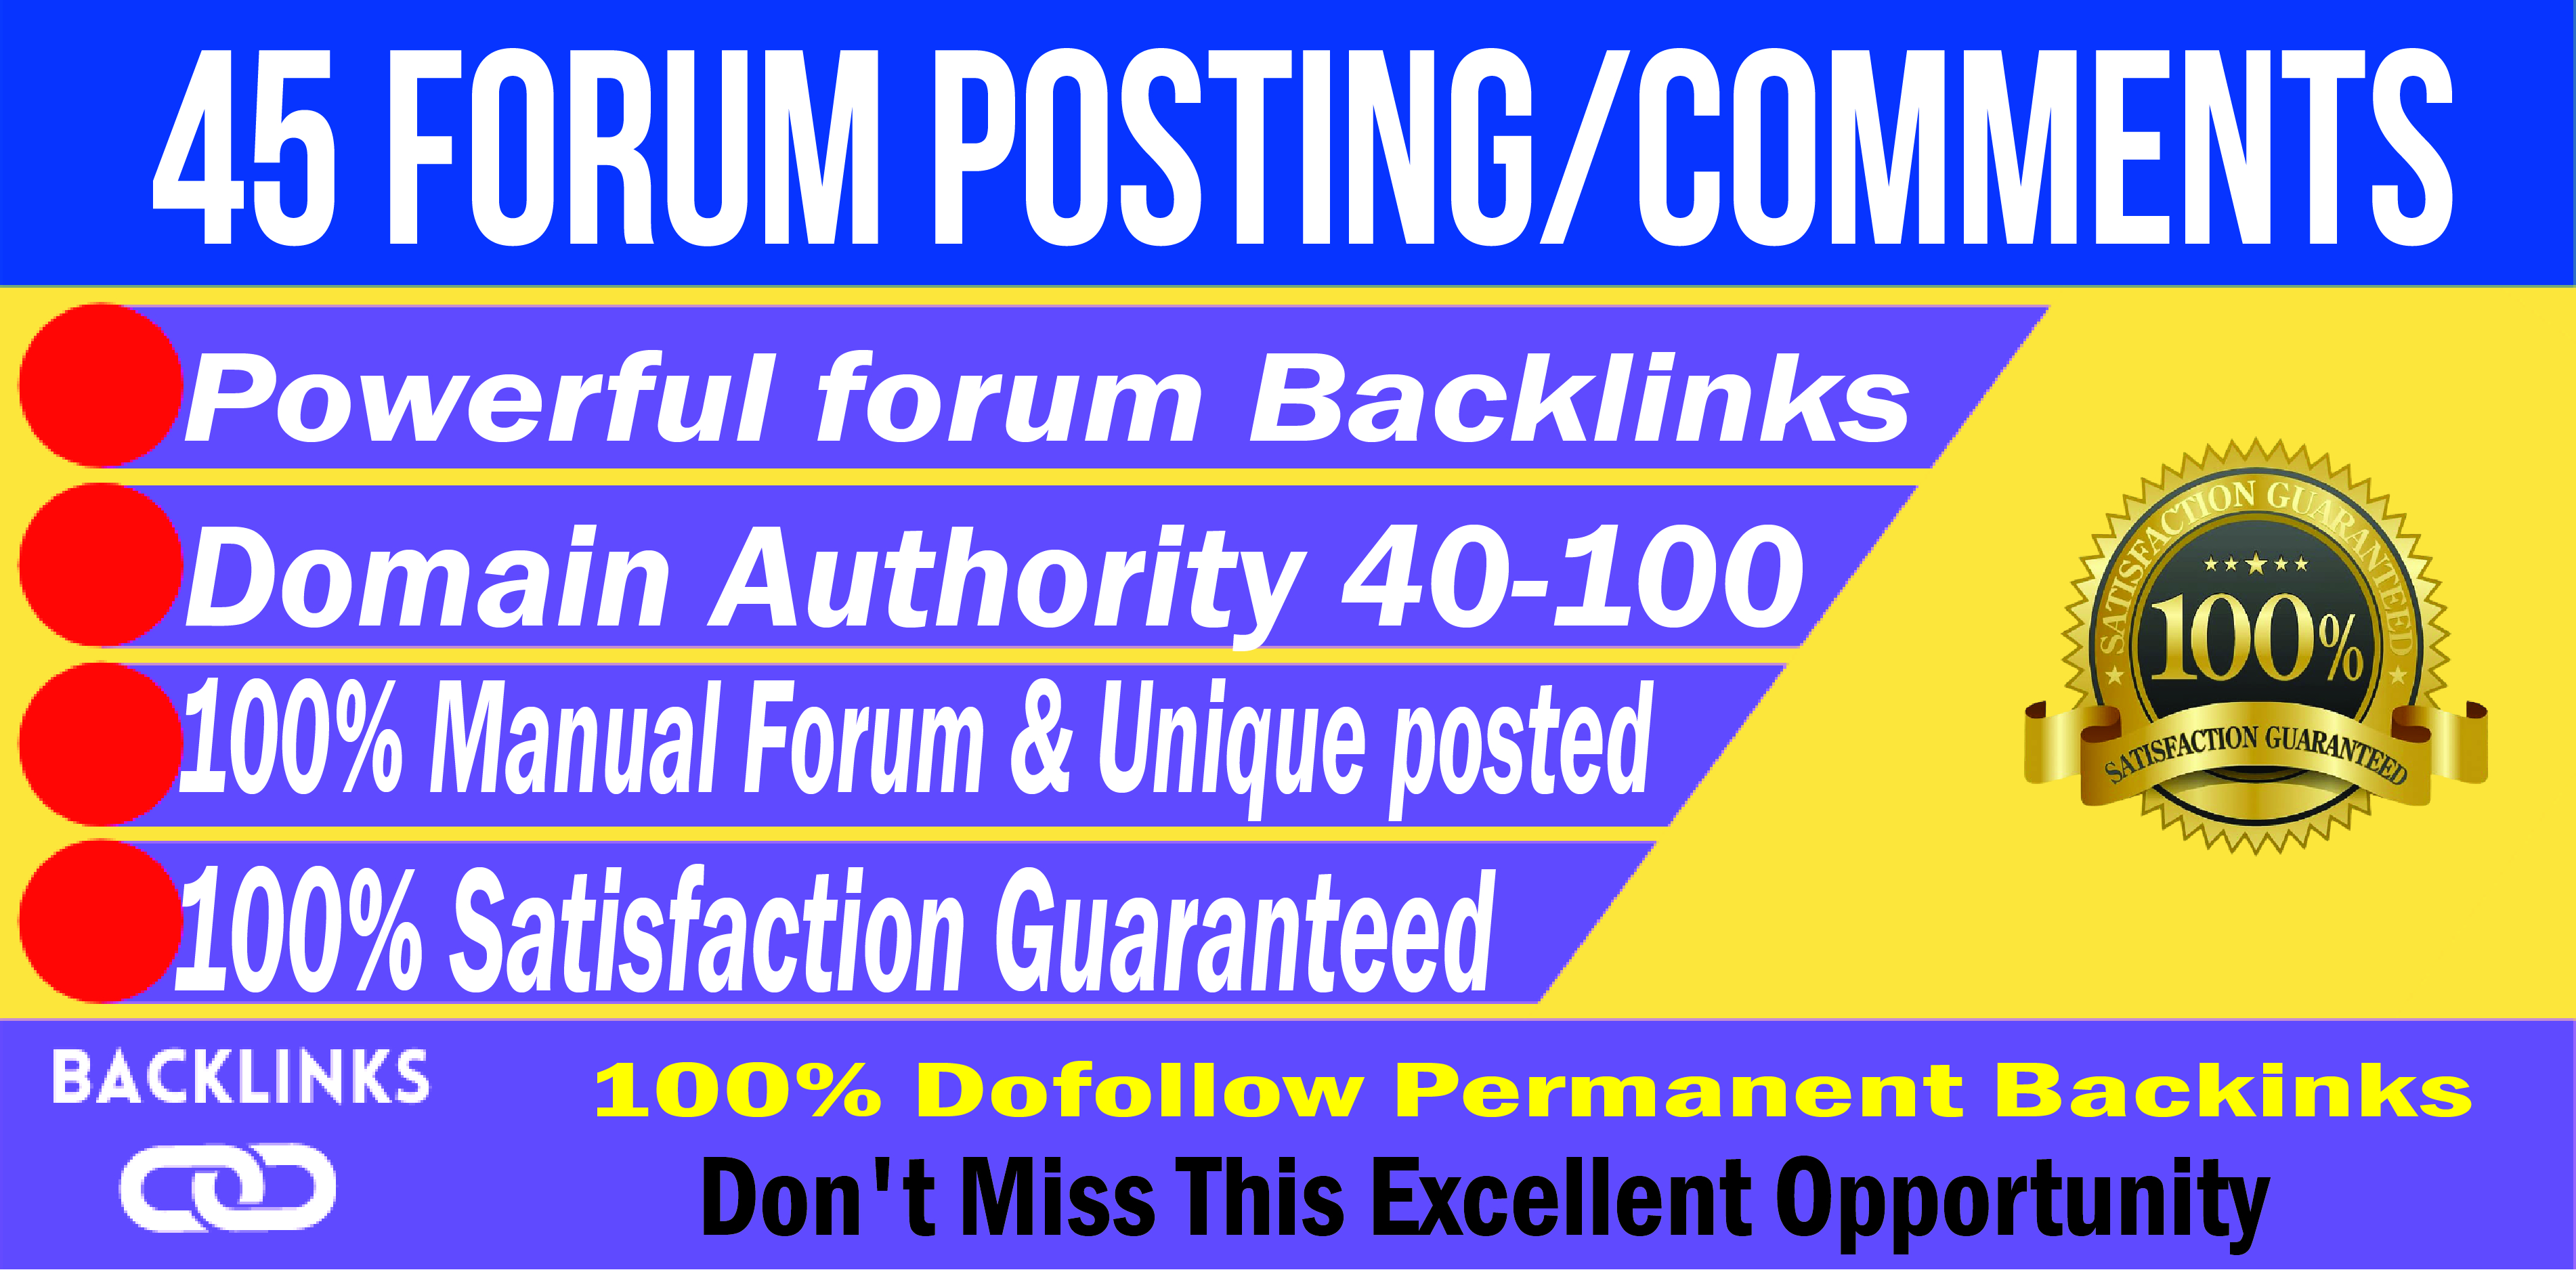 Create Forum Posting Backlinks 45 High Authority Links